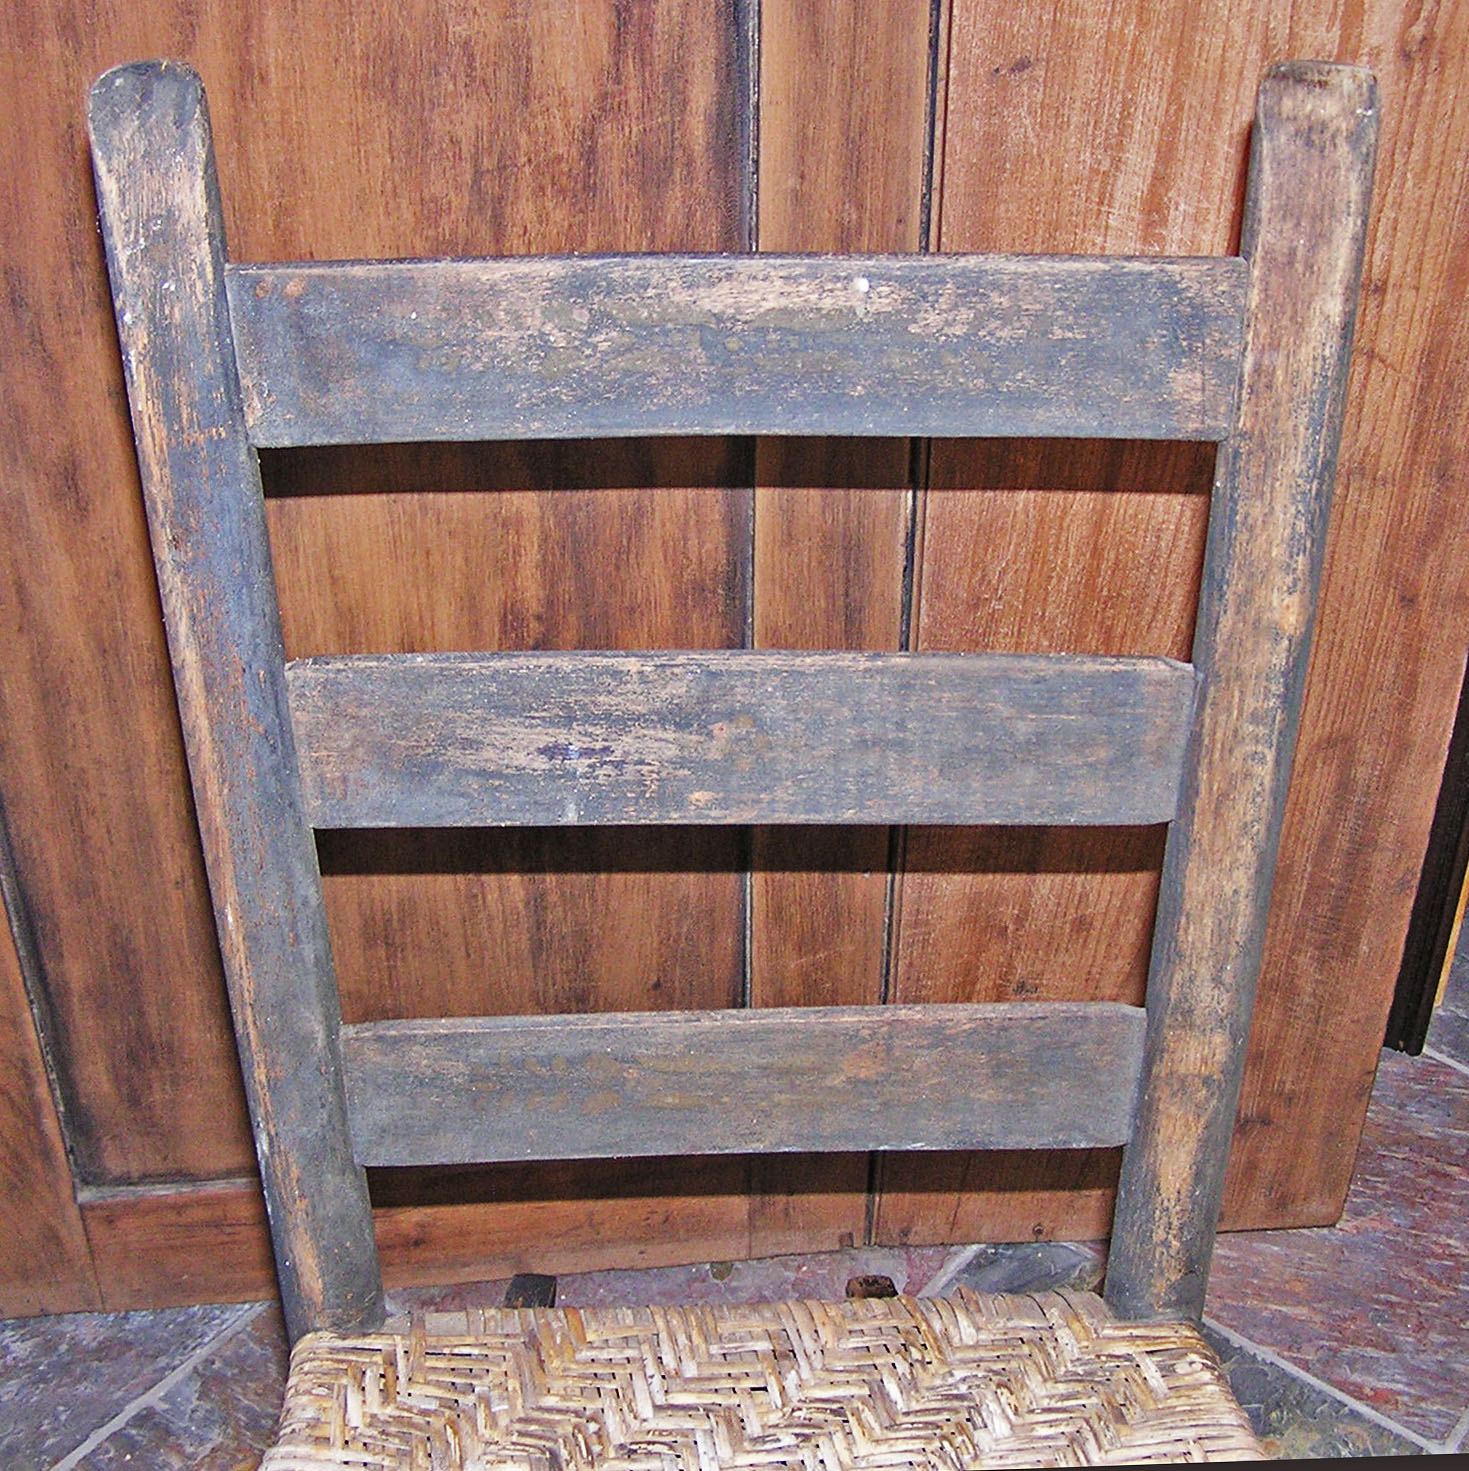 Shabby chic painted rocking chairs - A Diminutive Shabby Chic Black Painted Porch Cane Seated Ladder Back Rocking Chair With Thumb Back Stiles The Paint Is Very Worn And Chipped